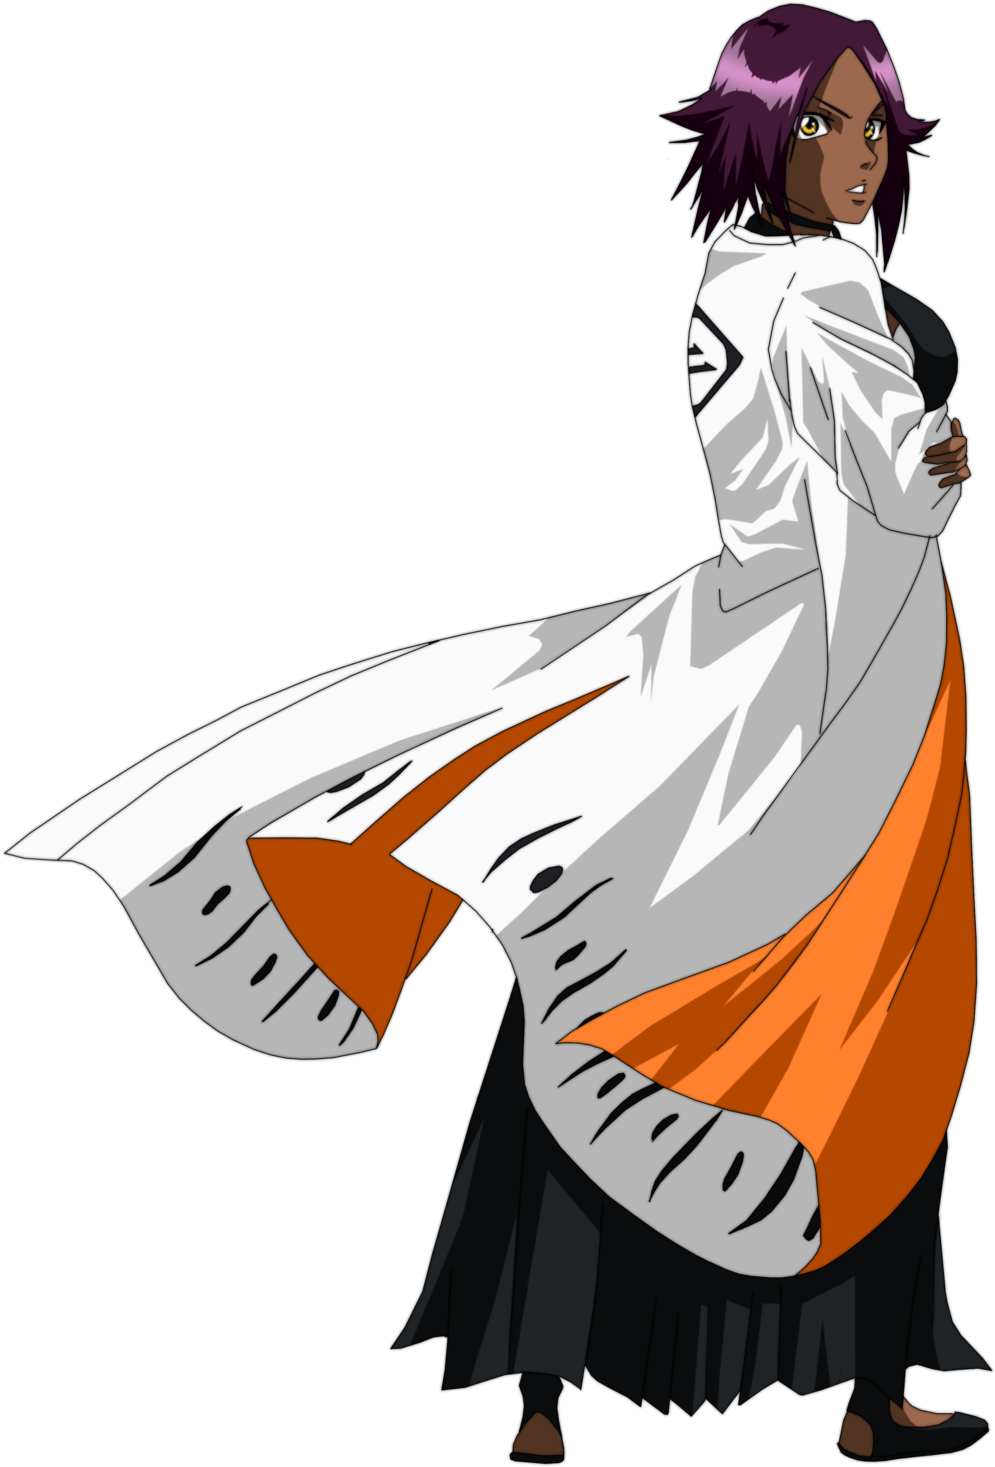 Bleach anime clipart picture transparent download Credit To Esteban Black Anime Characters, Bleach Characters ... picture transparent download